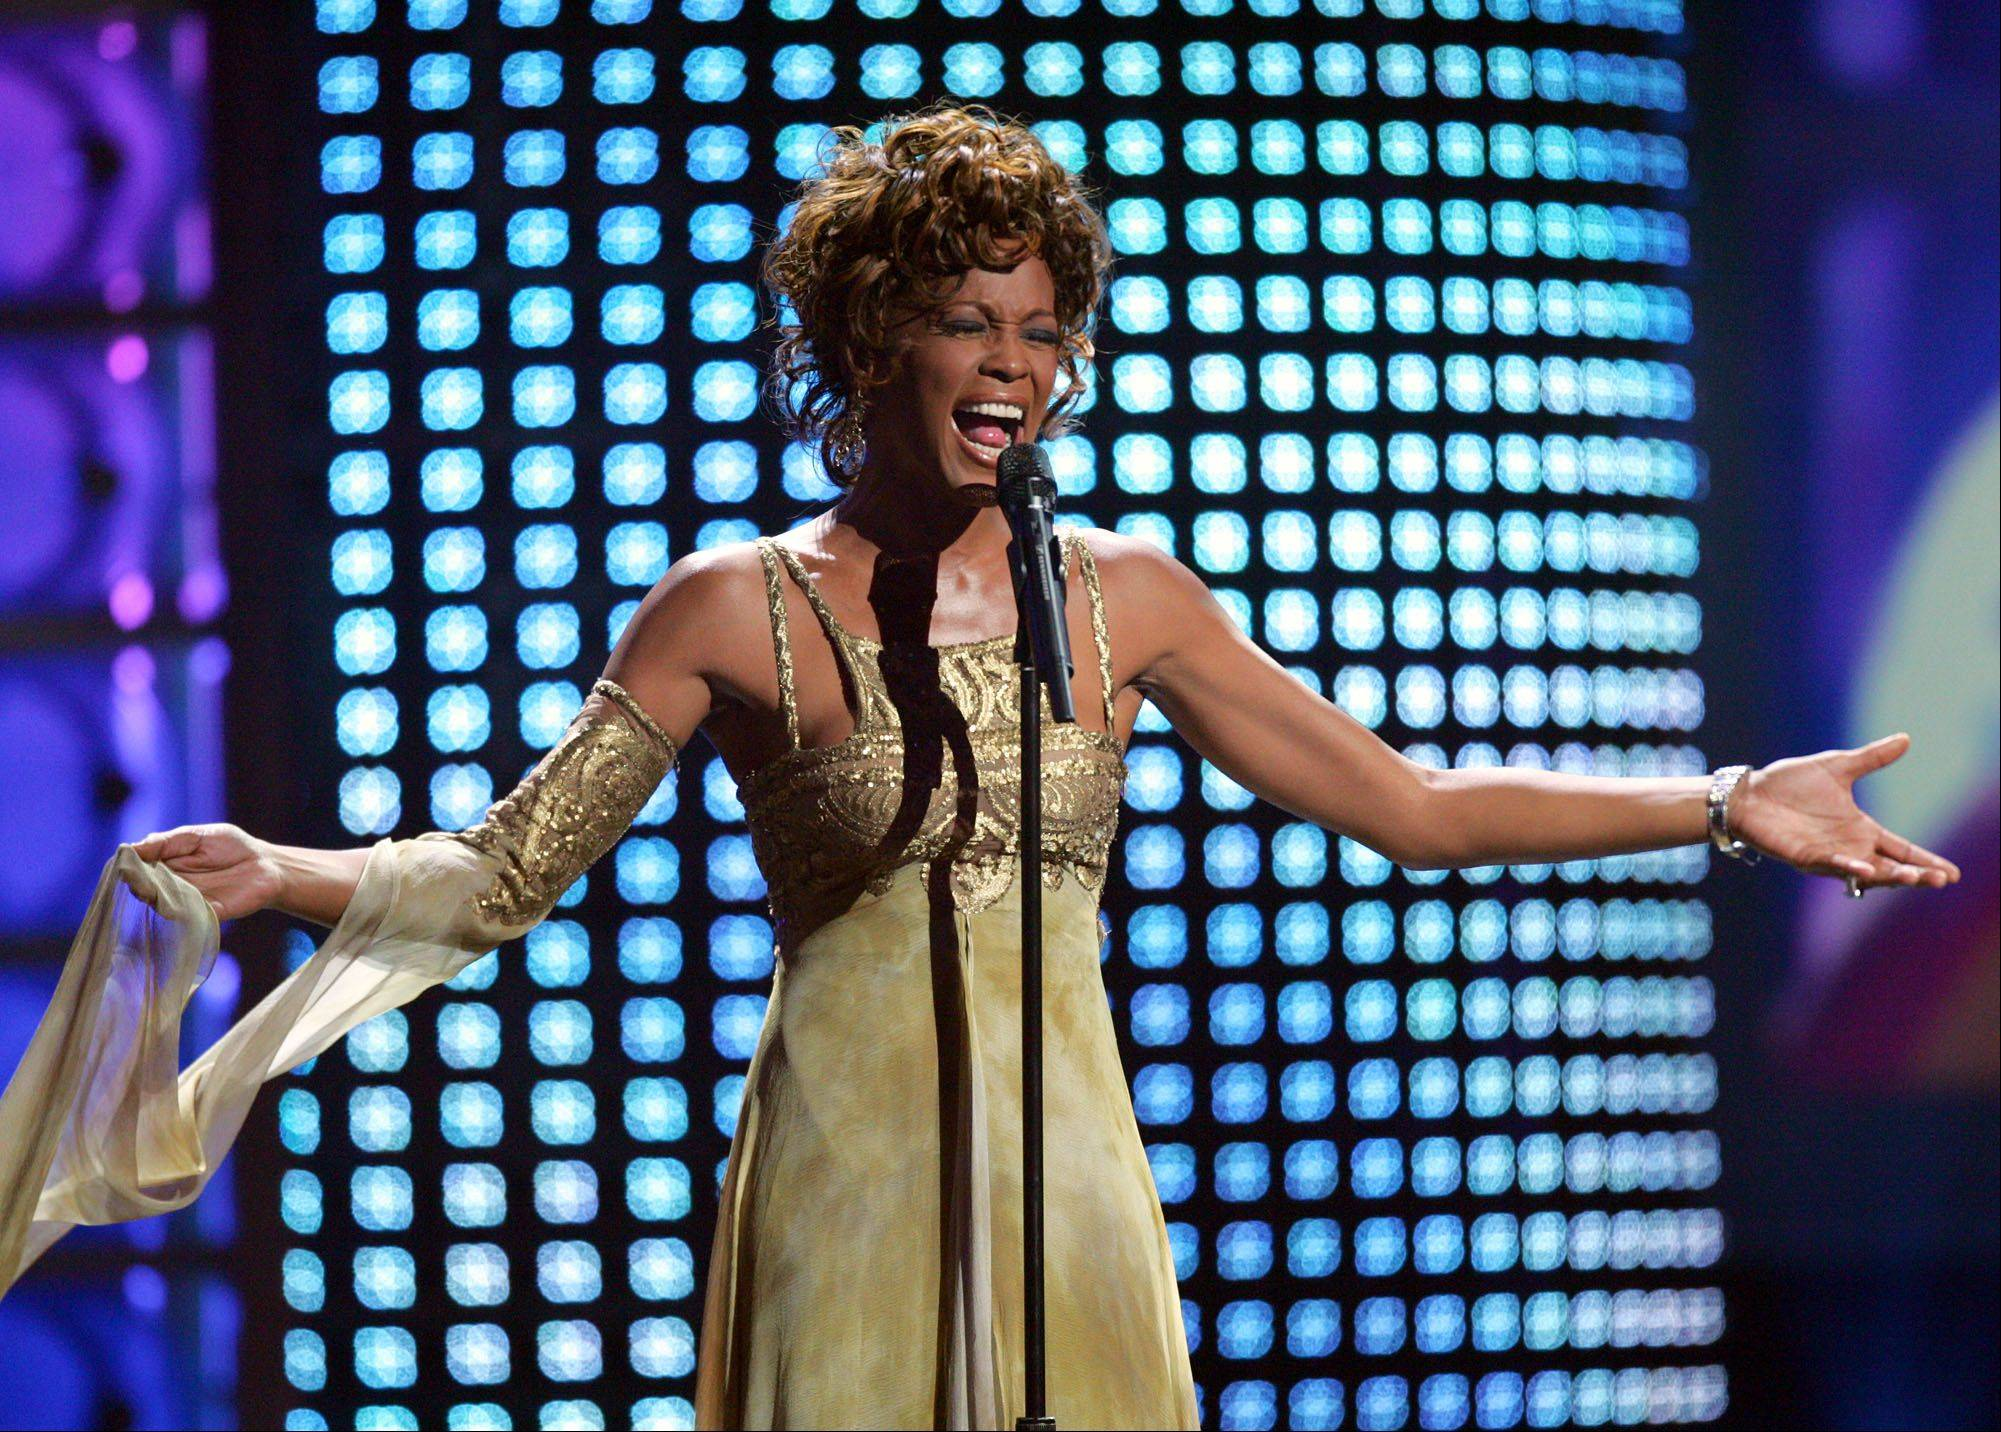 Whitney Houston performs at the 2004 World Music Awards in this Sept. 15, 2004, file photo, at the Thomas and Mack Arena in Las Vegas. A year after her first reported stay in rehab, Whitney Houston checked into a rehabilitation facility in 2005.